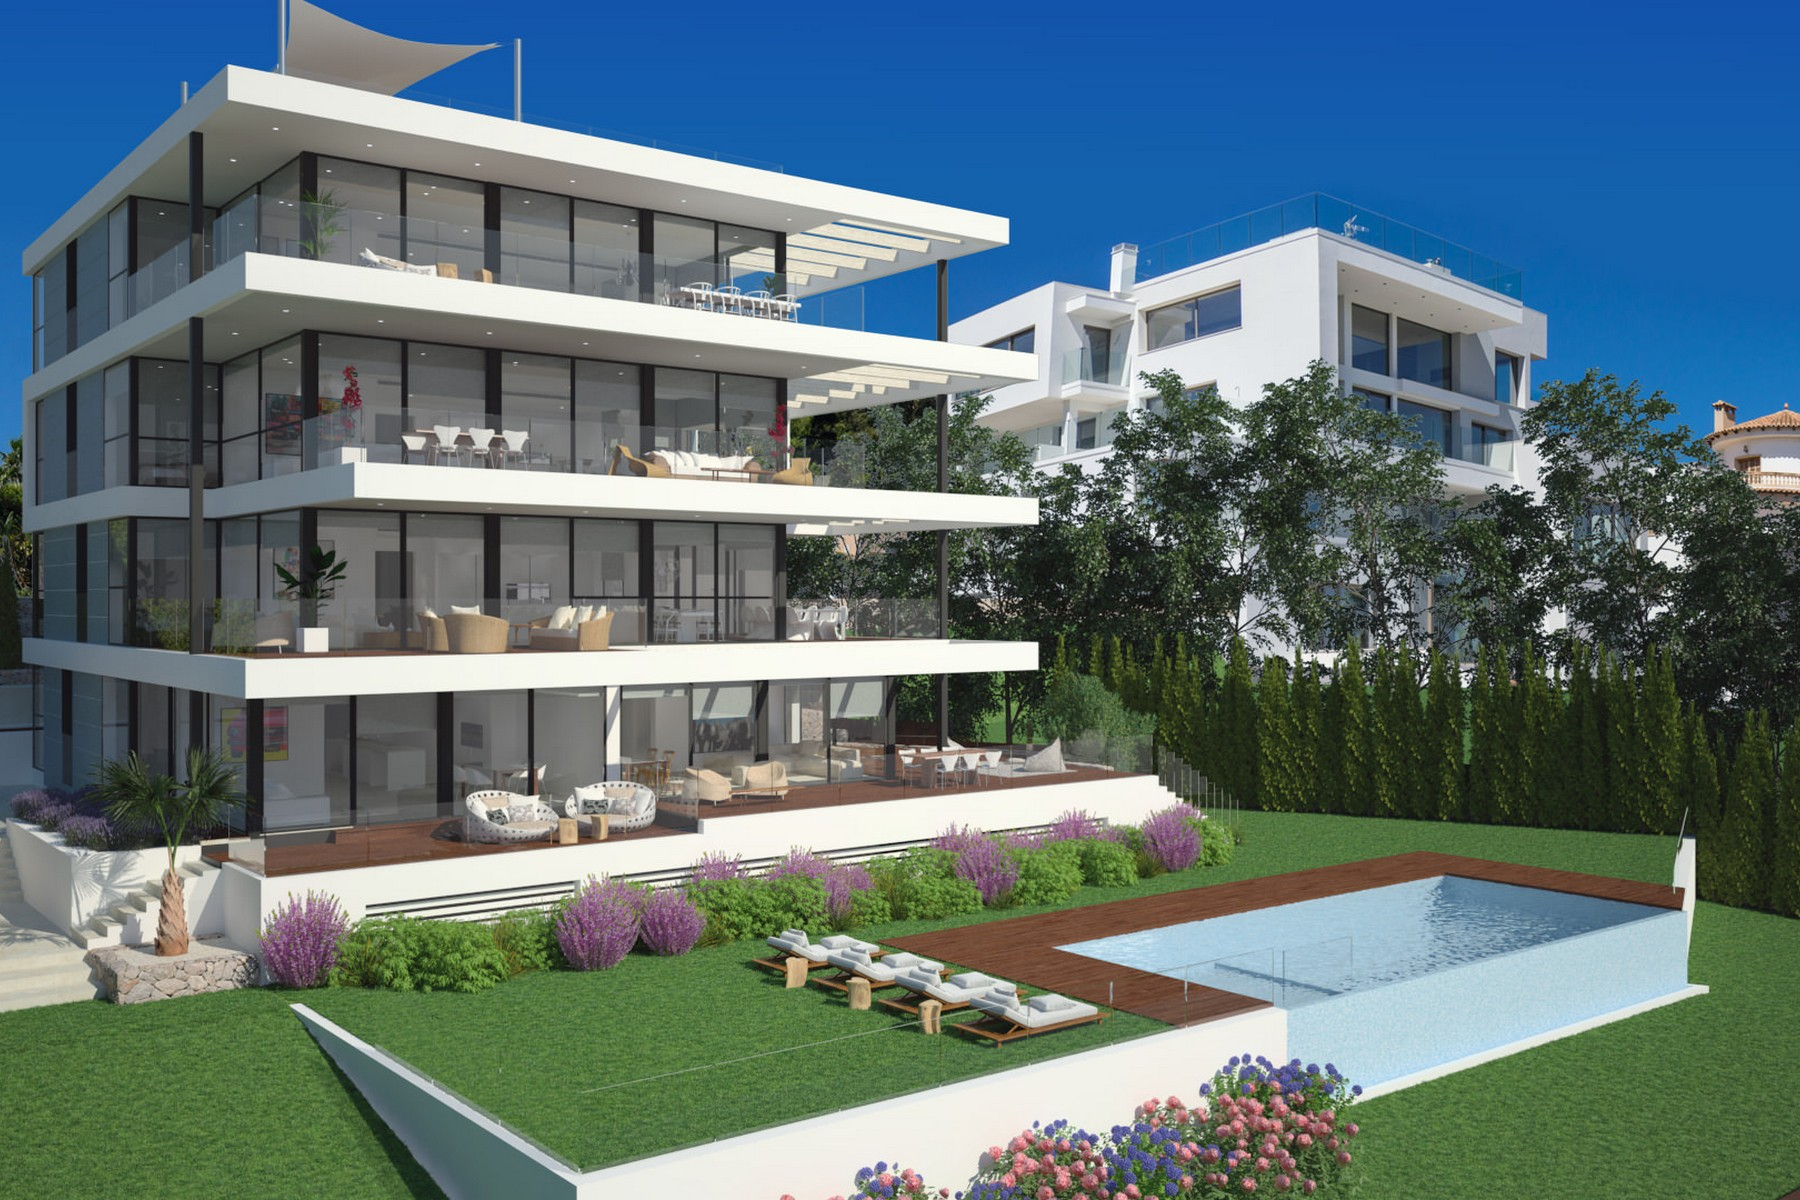 Apartamento para Venda às Luxury, sea view garden apartments in Cas Catalá Bendinat, Palma De Maiorca, 07181 Espanha